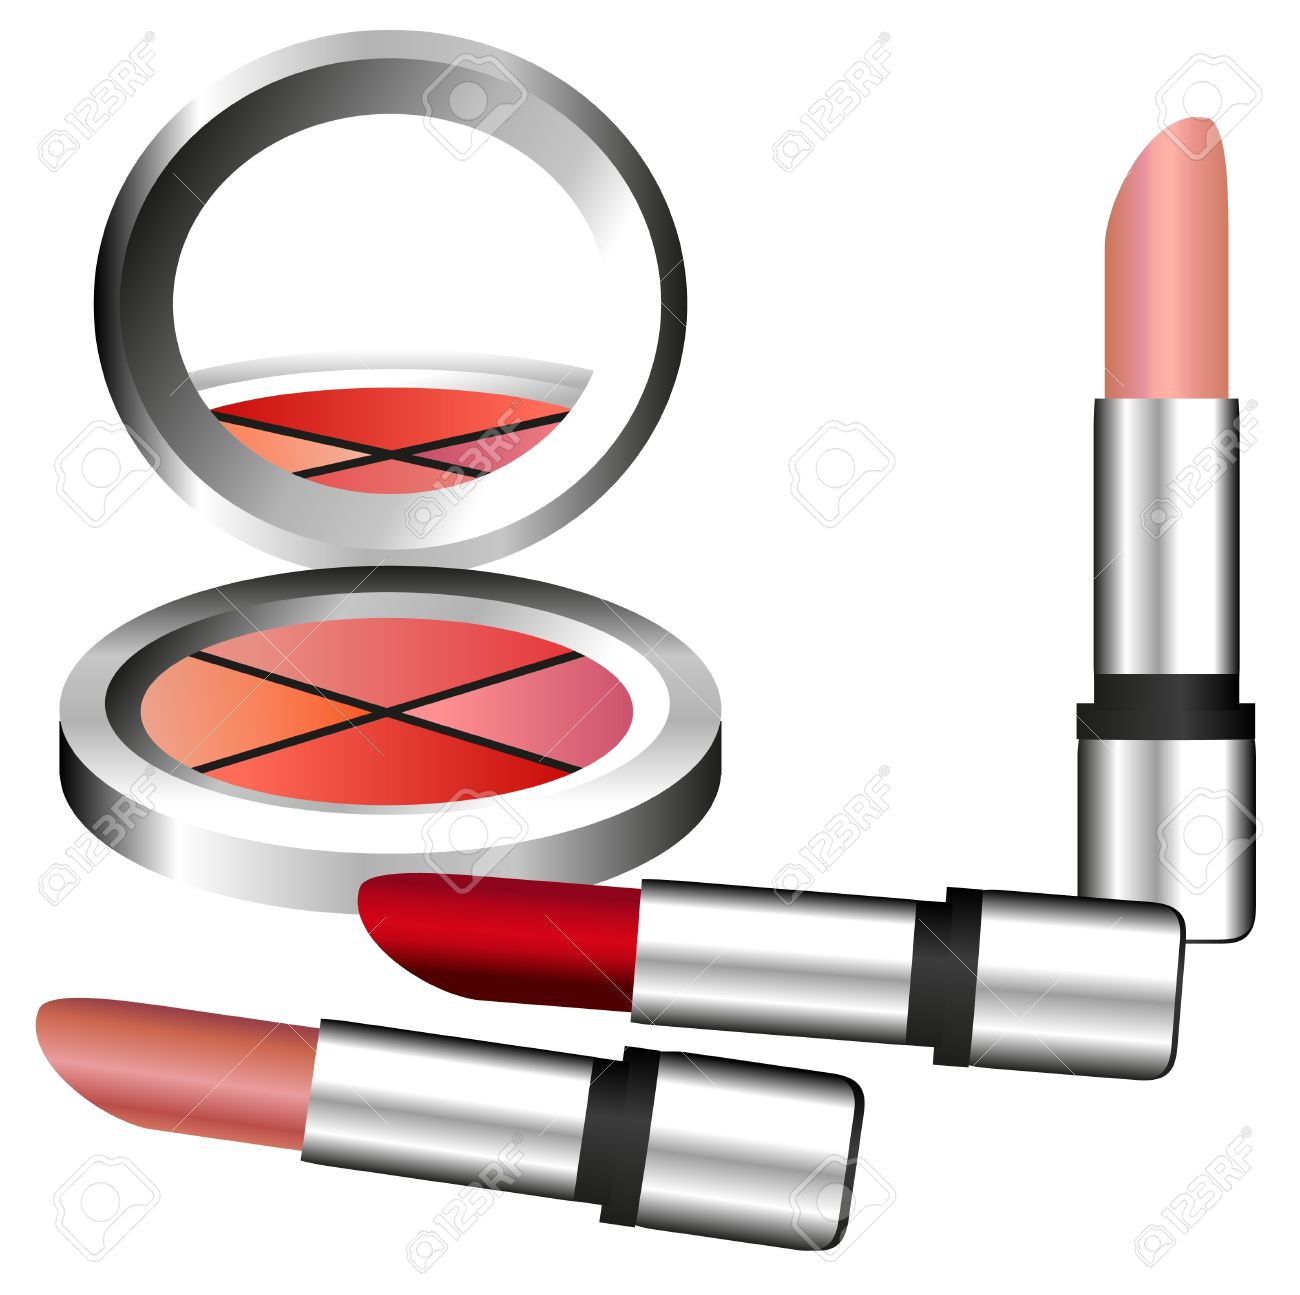 Eye shadow makeup clipart.